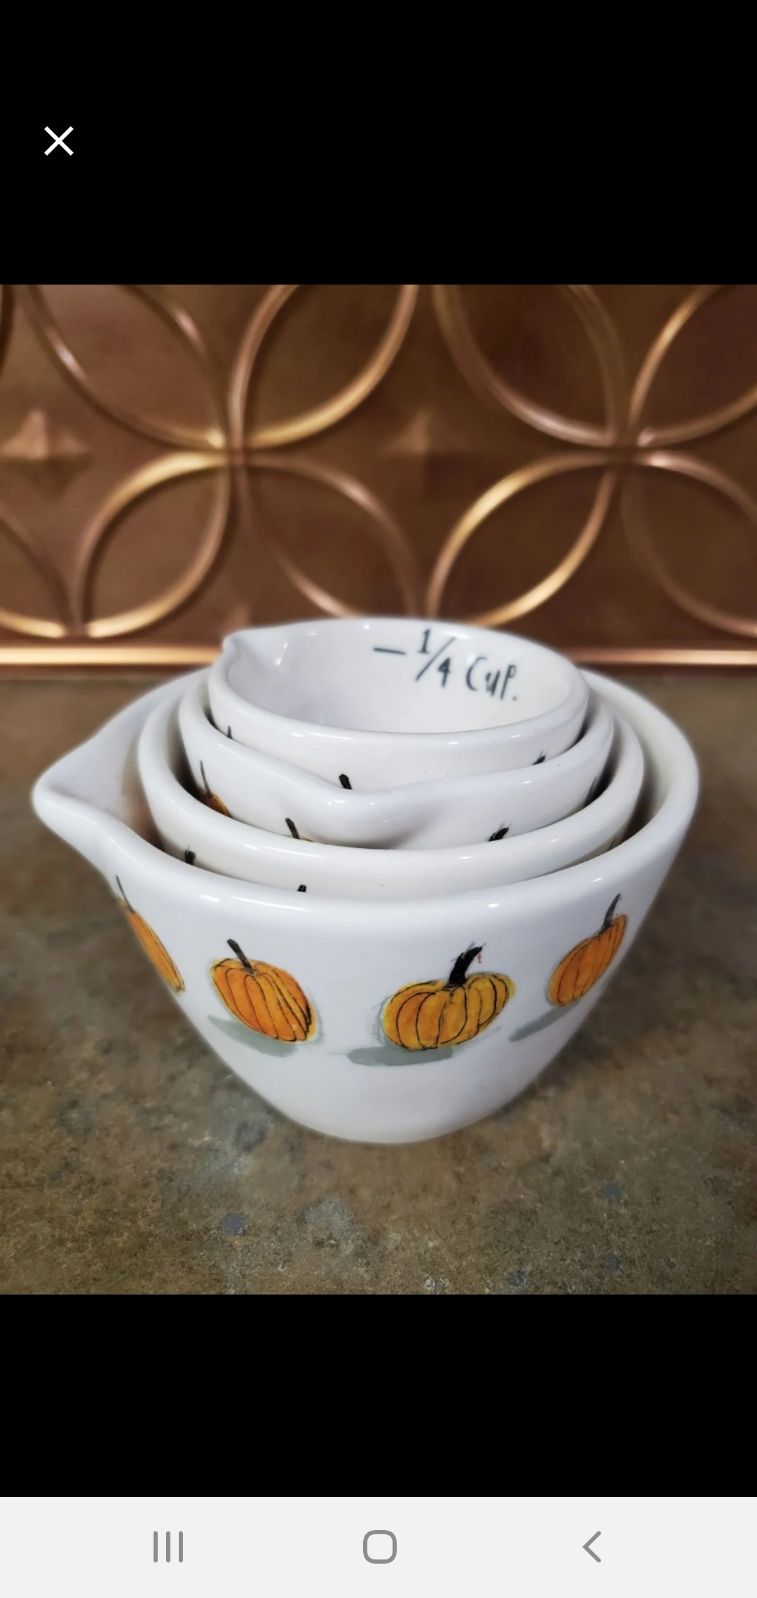 Rae dunn pumpkin measuring cups